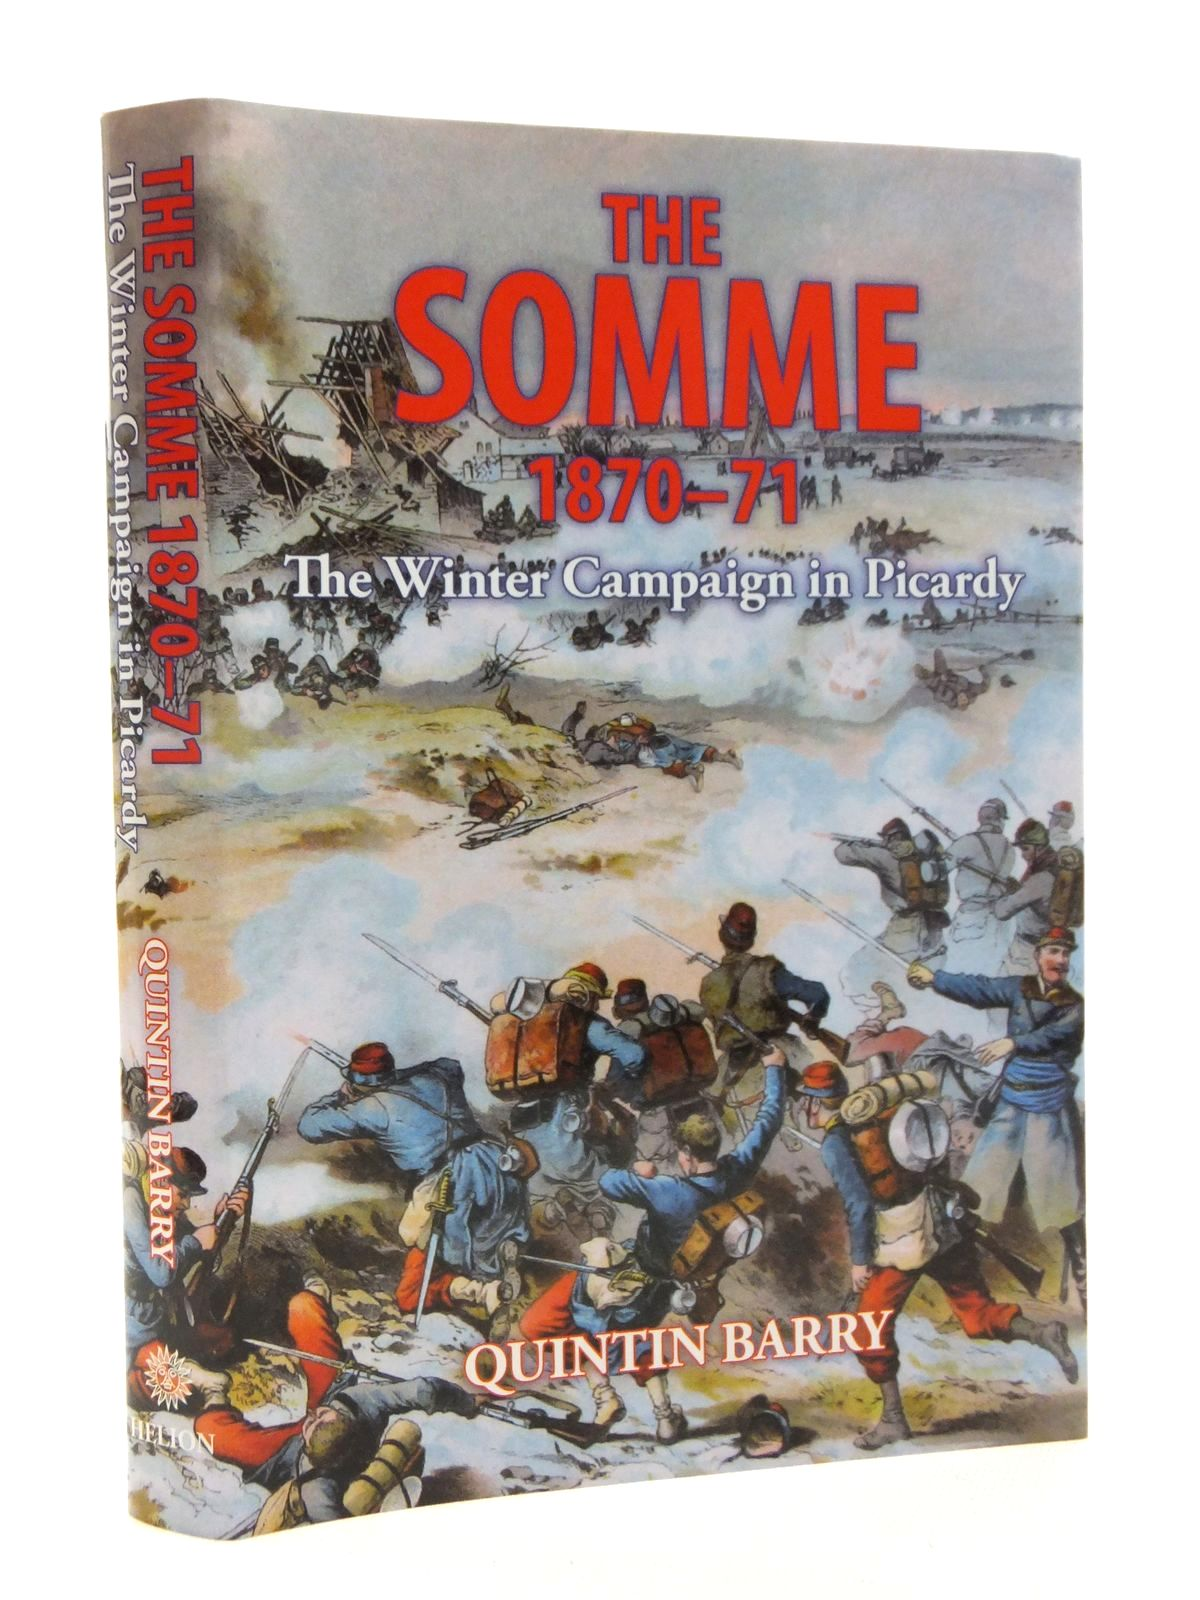 Photo of THE SOMME 1870-71 THE WINTER CAMPAIGN IN PICARDY written by Barry, Quintin published by Helion & Company (STOCK CODE: 1609942)  for sale by Stella & Rose's Books